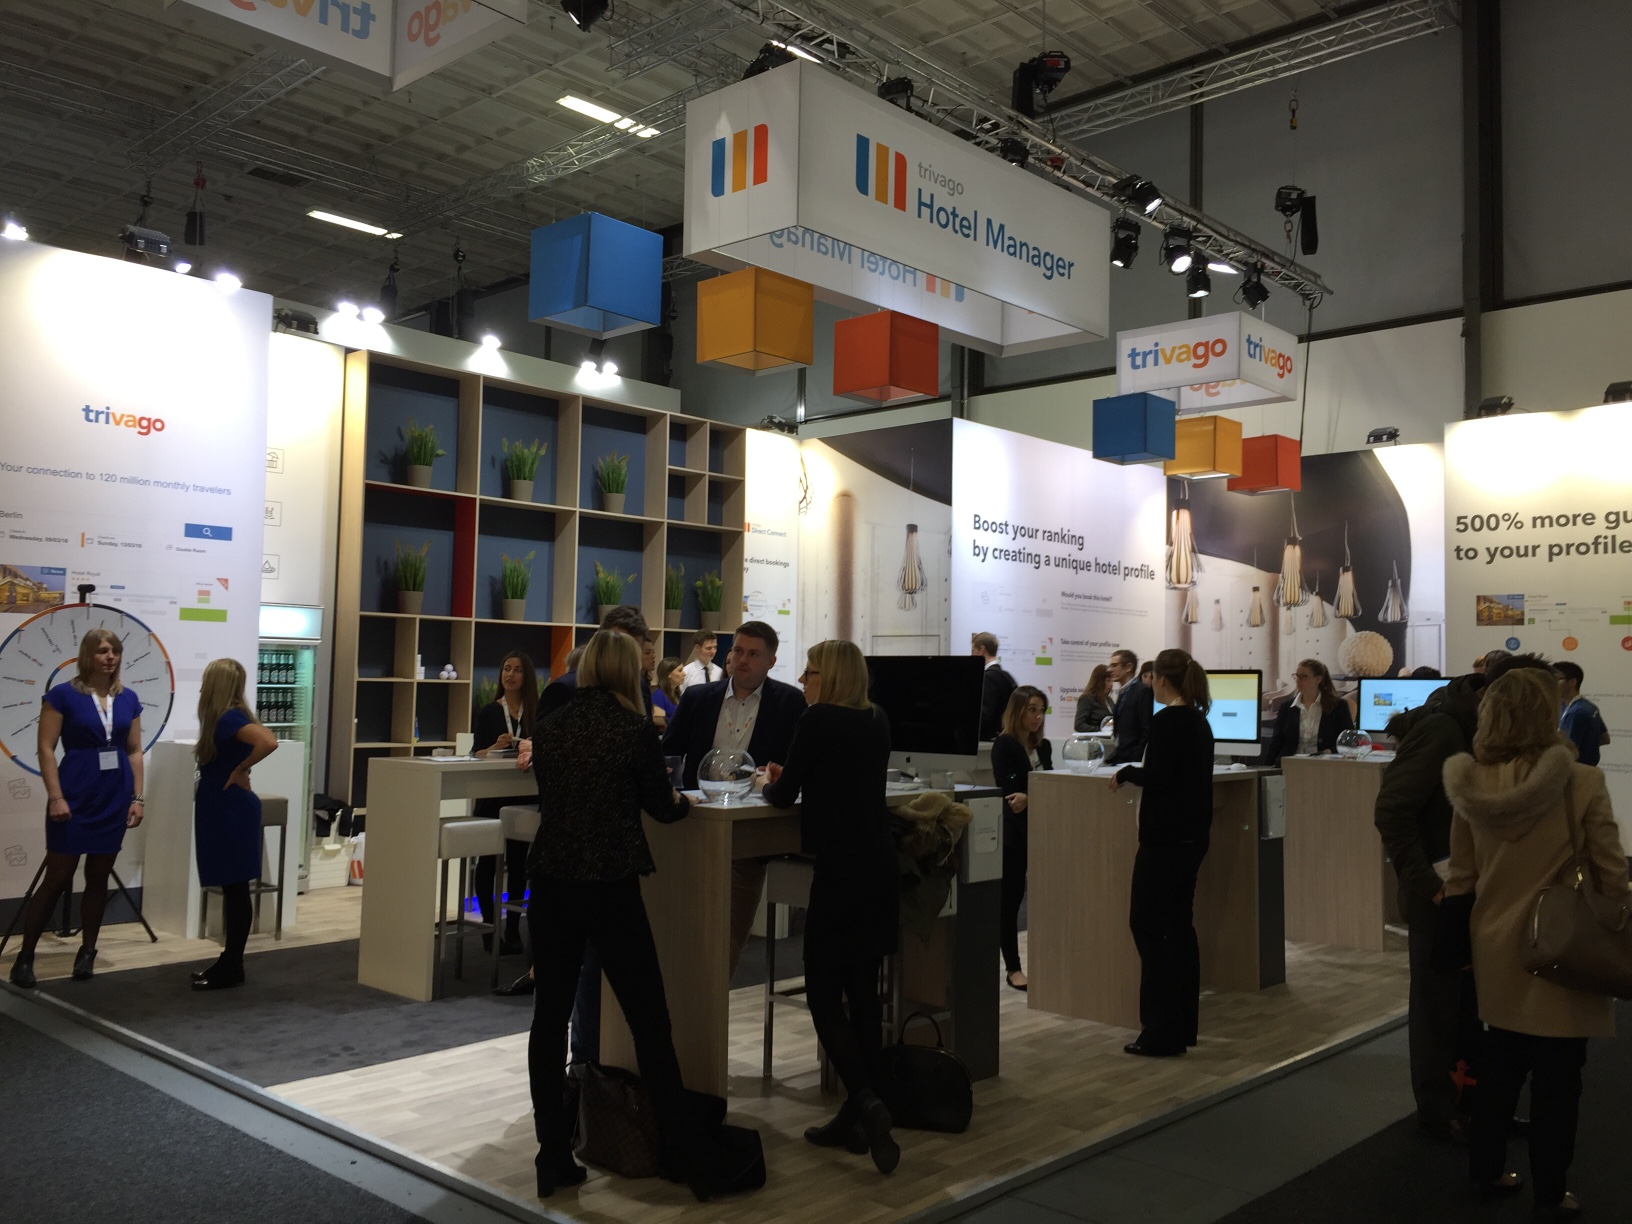 trivago's stand at ITB Berlin 2016 with people crowding in front